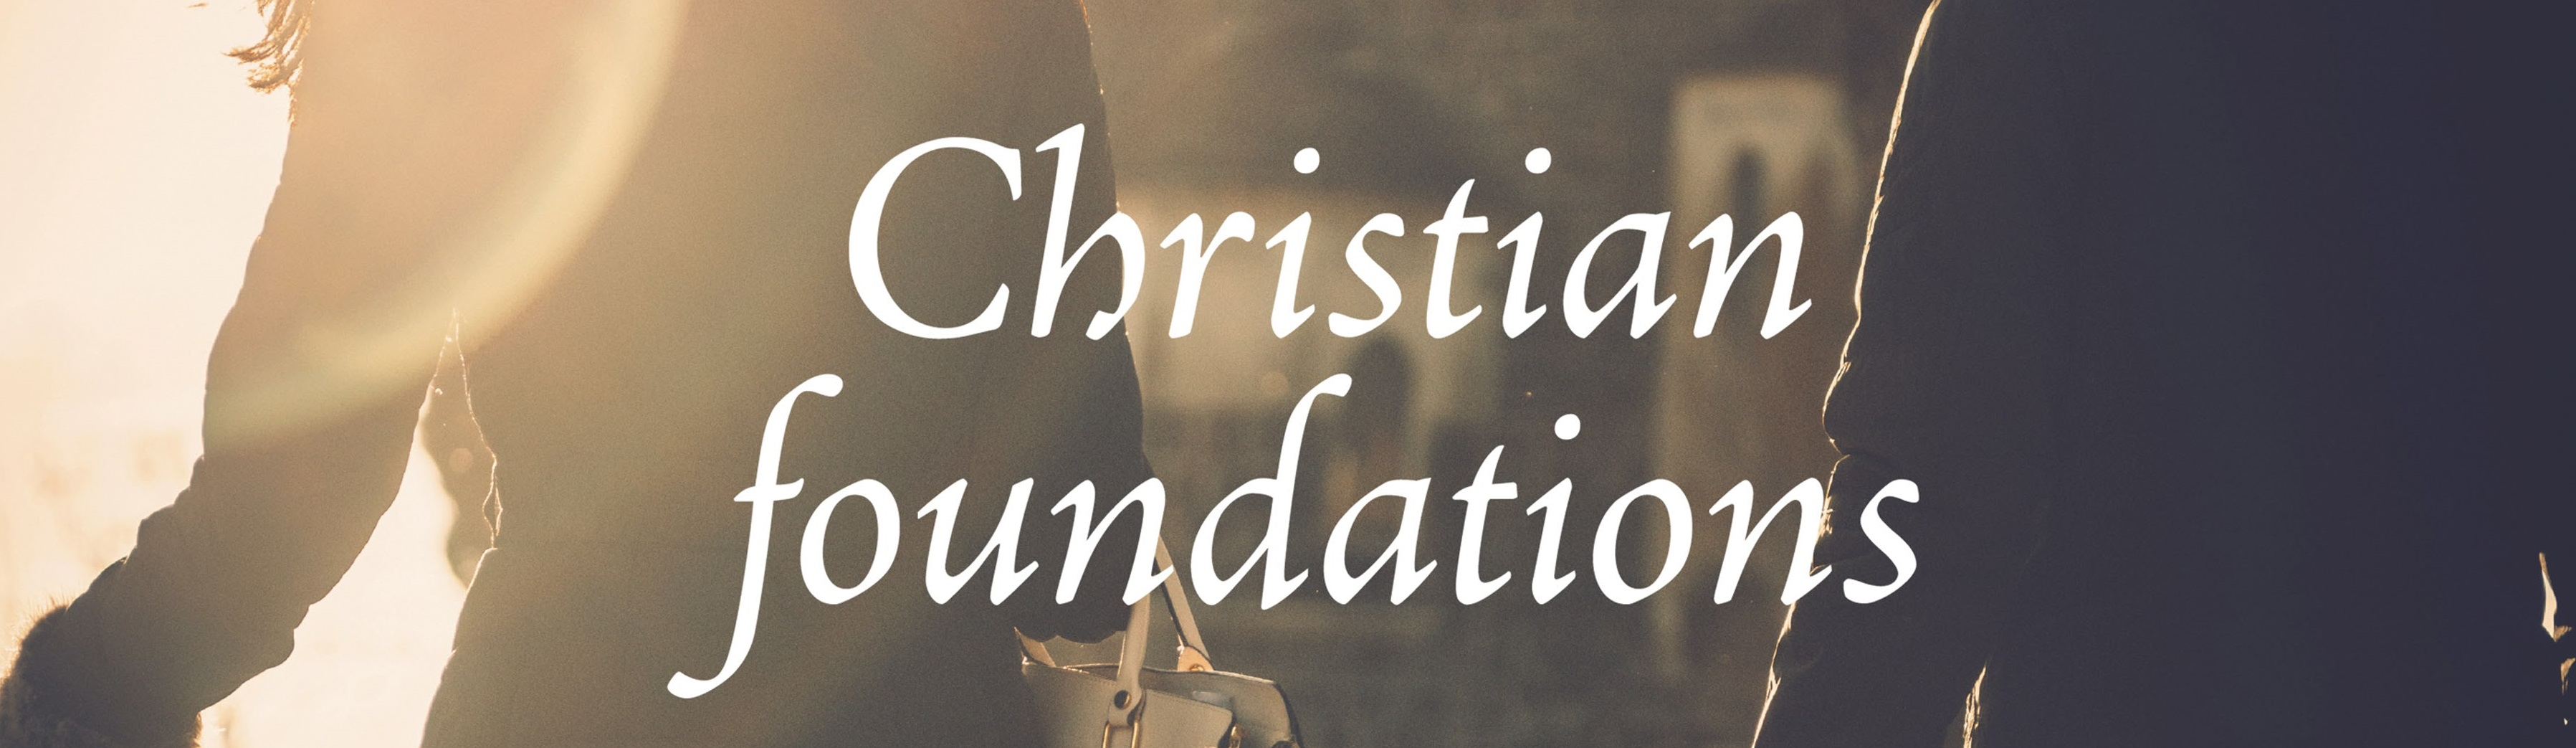 Christian Foundations Banner